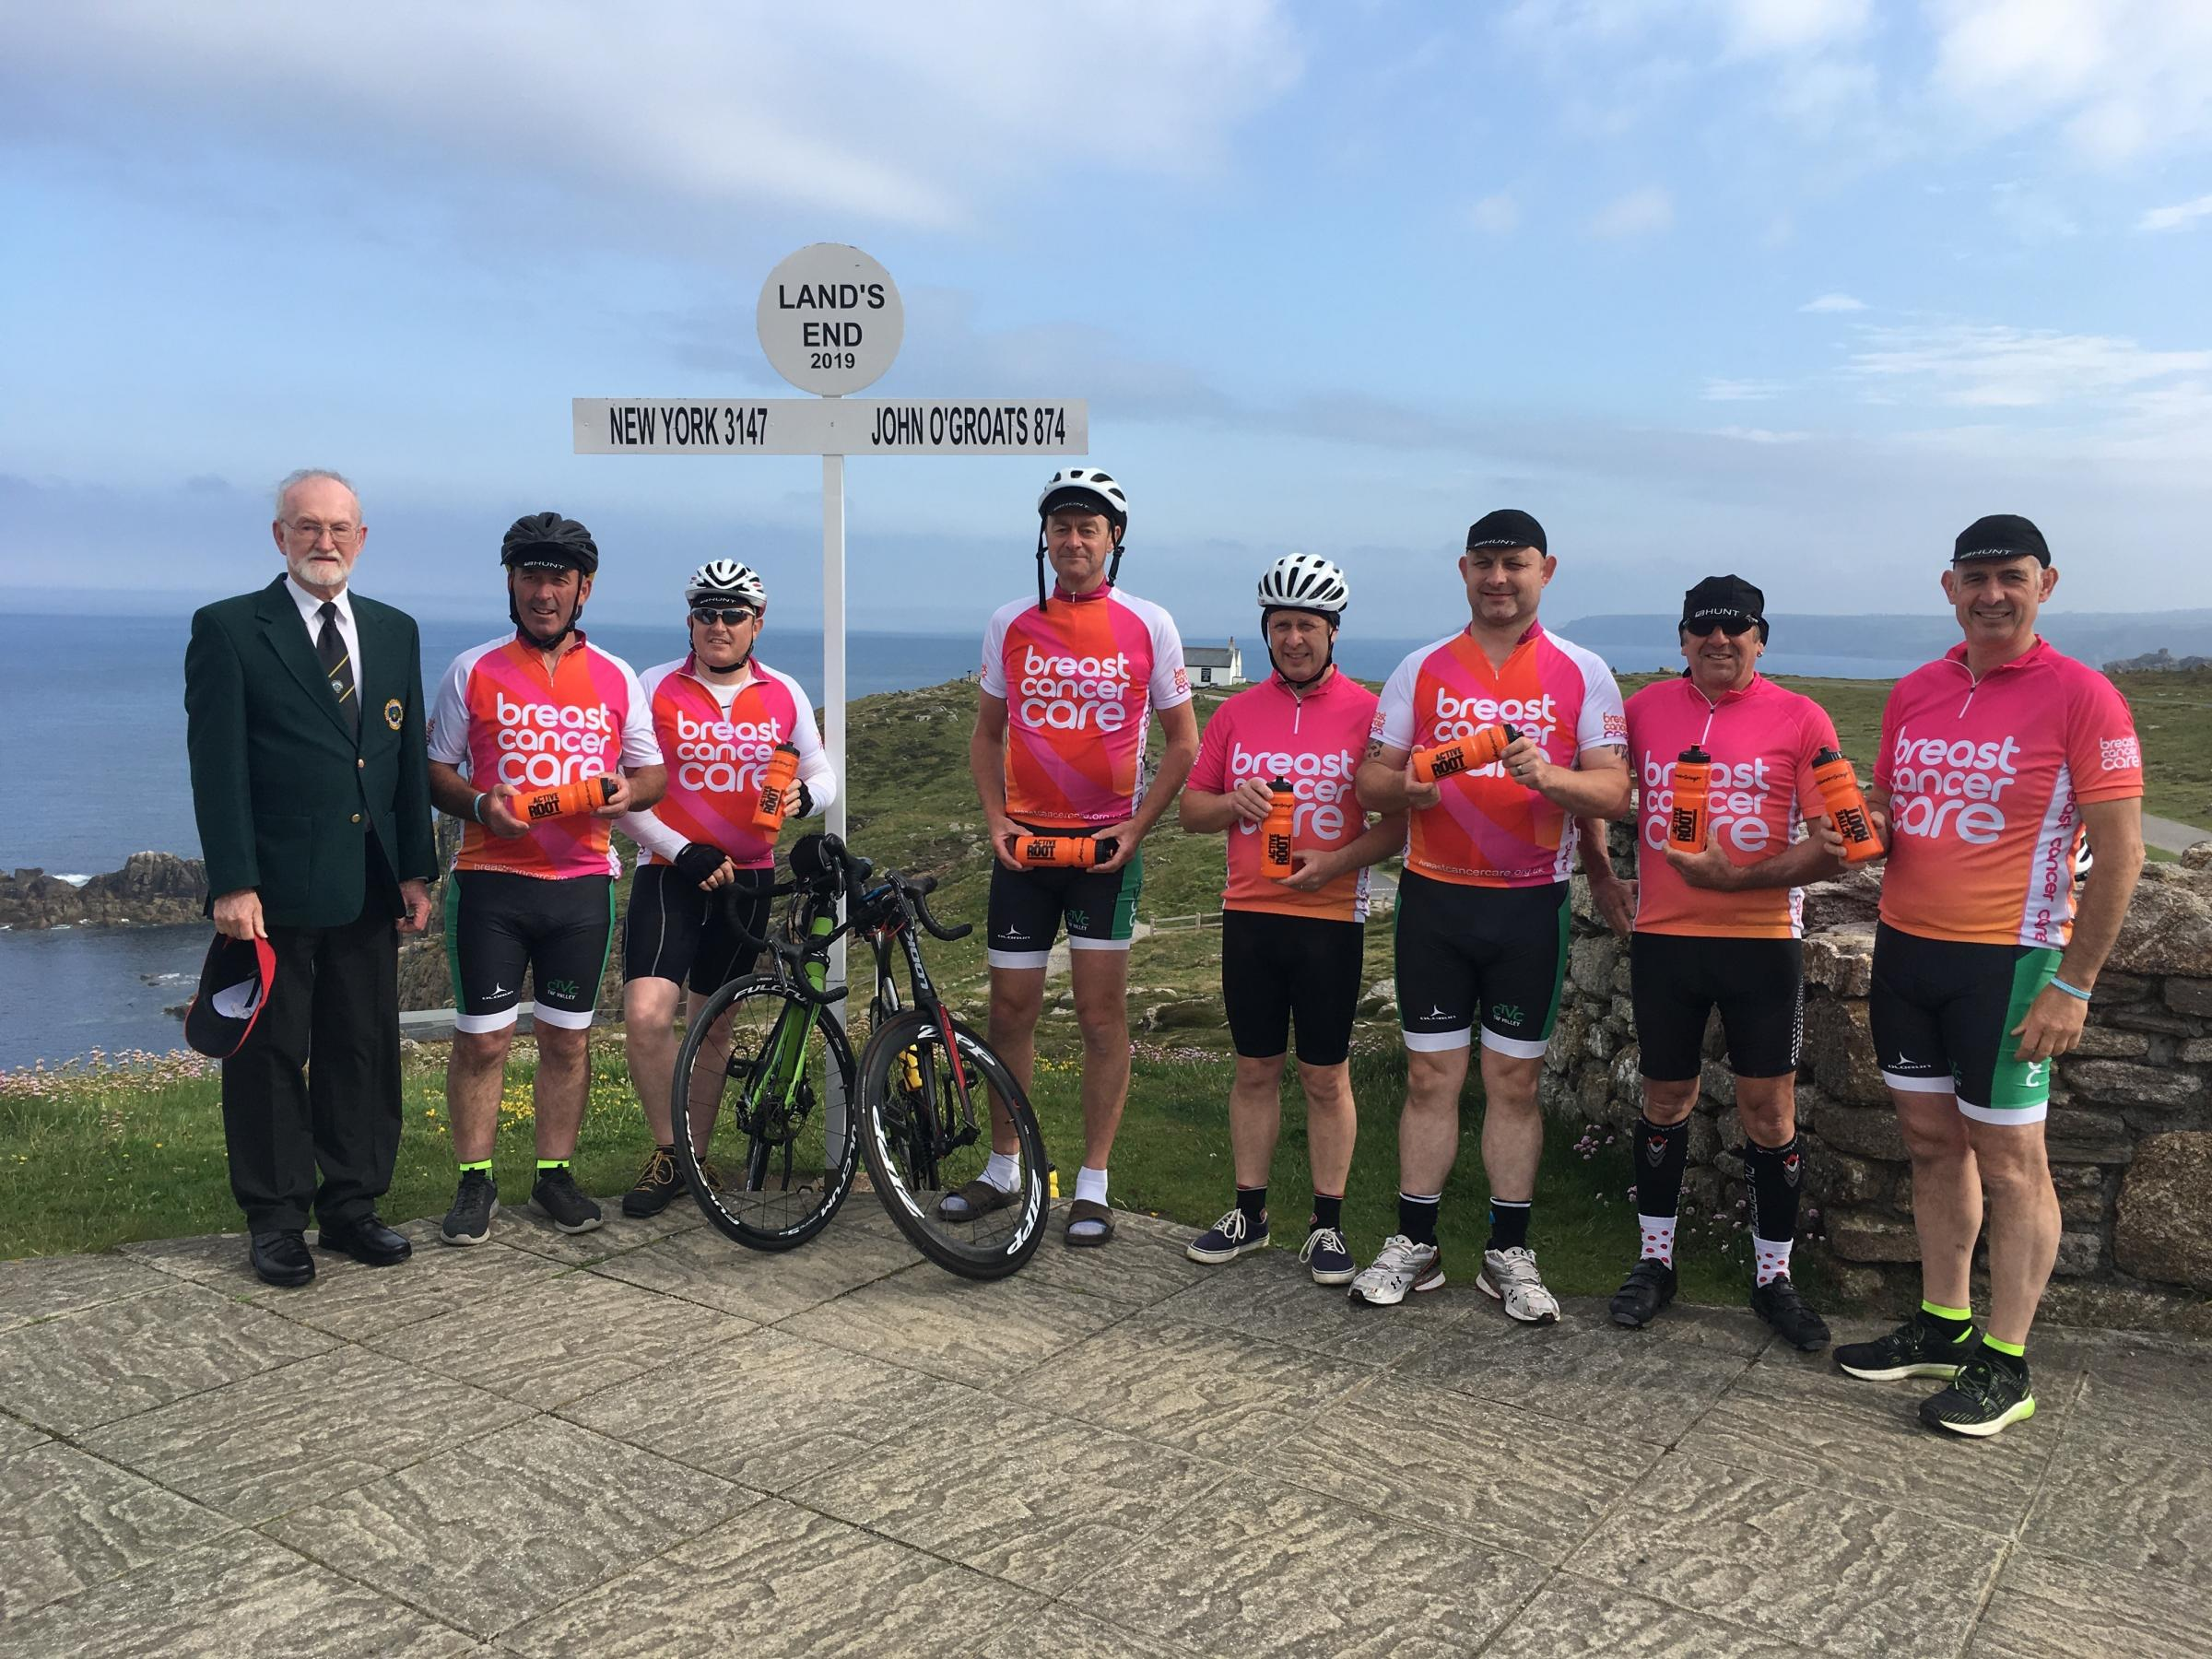 Whitland Male Choir's 360-mile cycle challenge is raising money for Breast Cancer Care